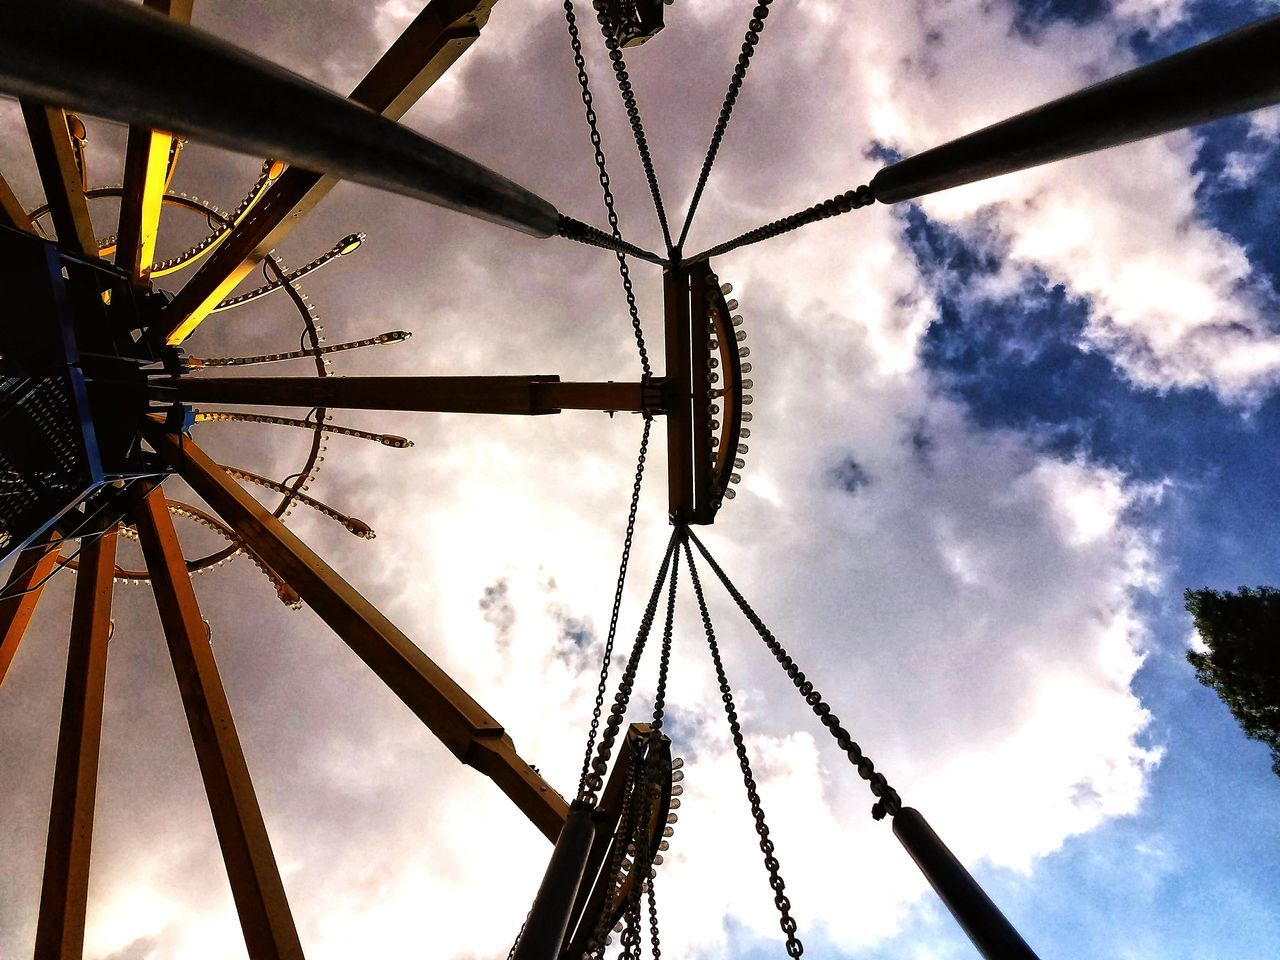 Looking up Swings Sky Low Angle View Arts Culture And Entertainment Cloud - Sky Amusement Park No People Amusement Park Ride Outdoors Day Close-up Nature Chains Rods Light Blub Lights Built_Structure Man Made Sky And Clouds Fun Times Magic Mountain Six Flags Magic Mountain